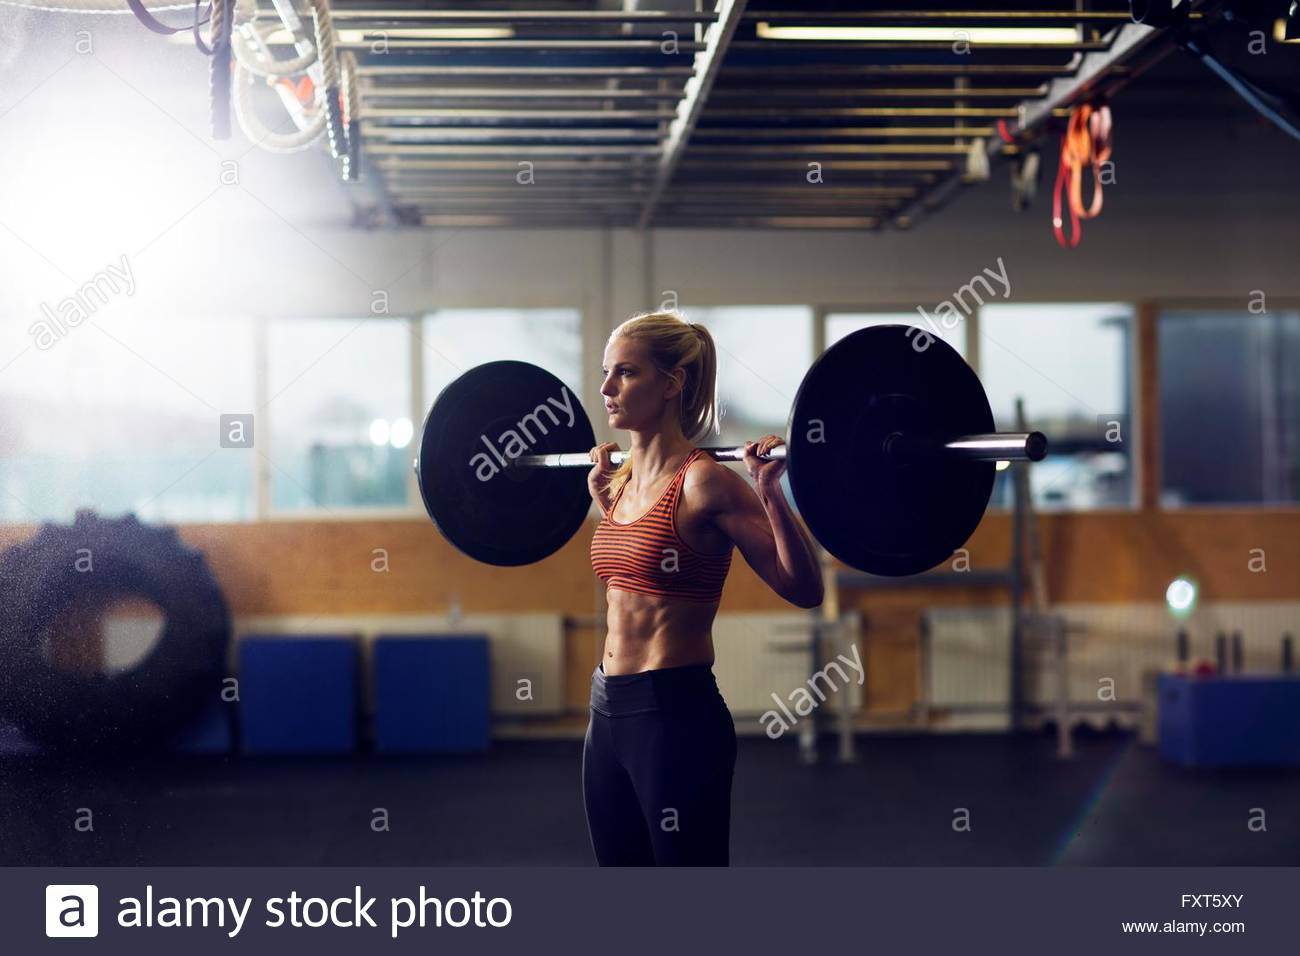 Woman lifting barbell on shoulders in gym - Stock Image